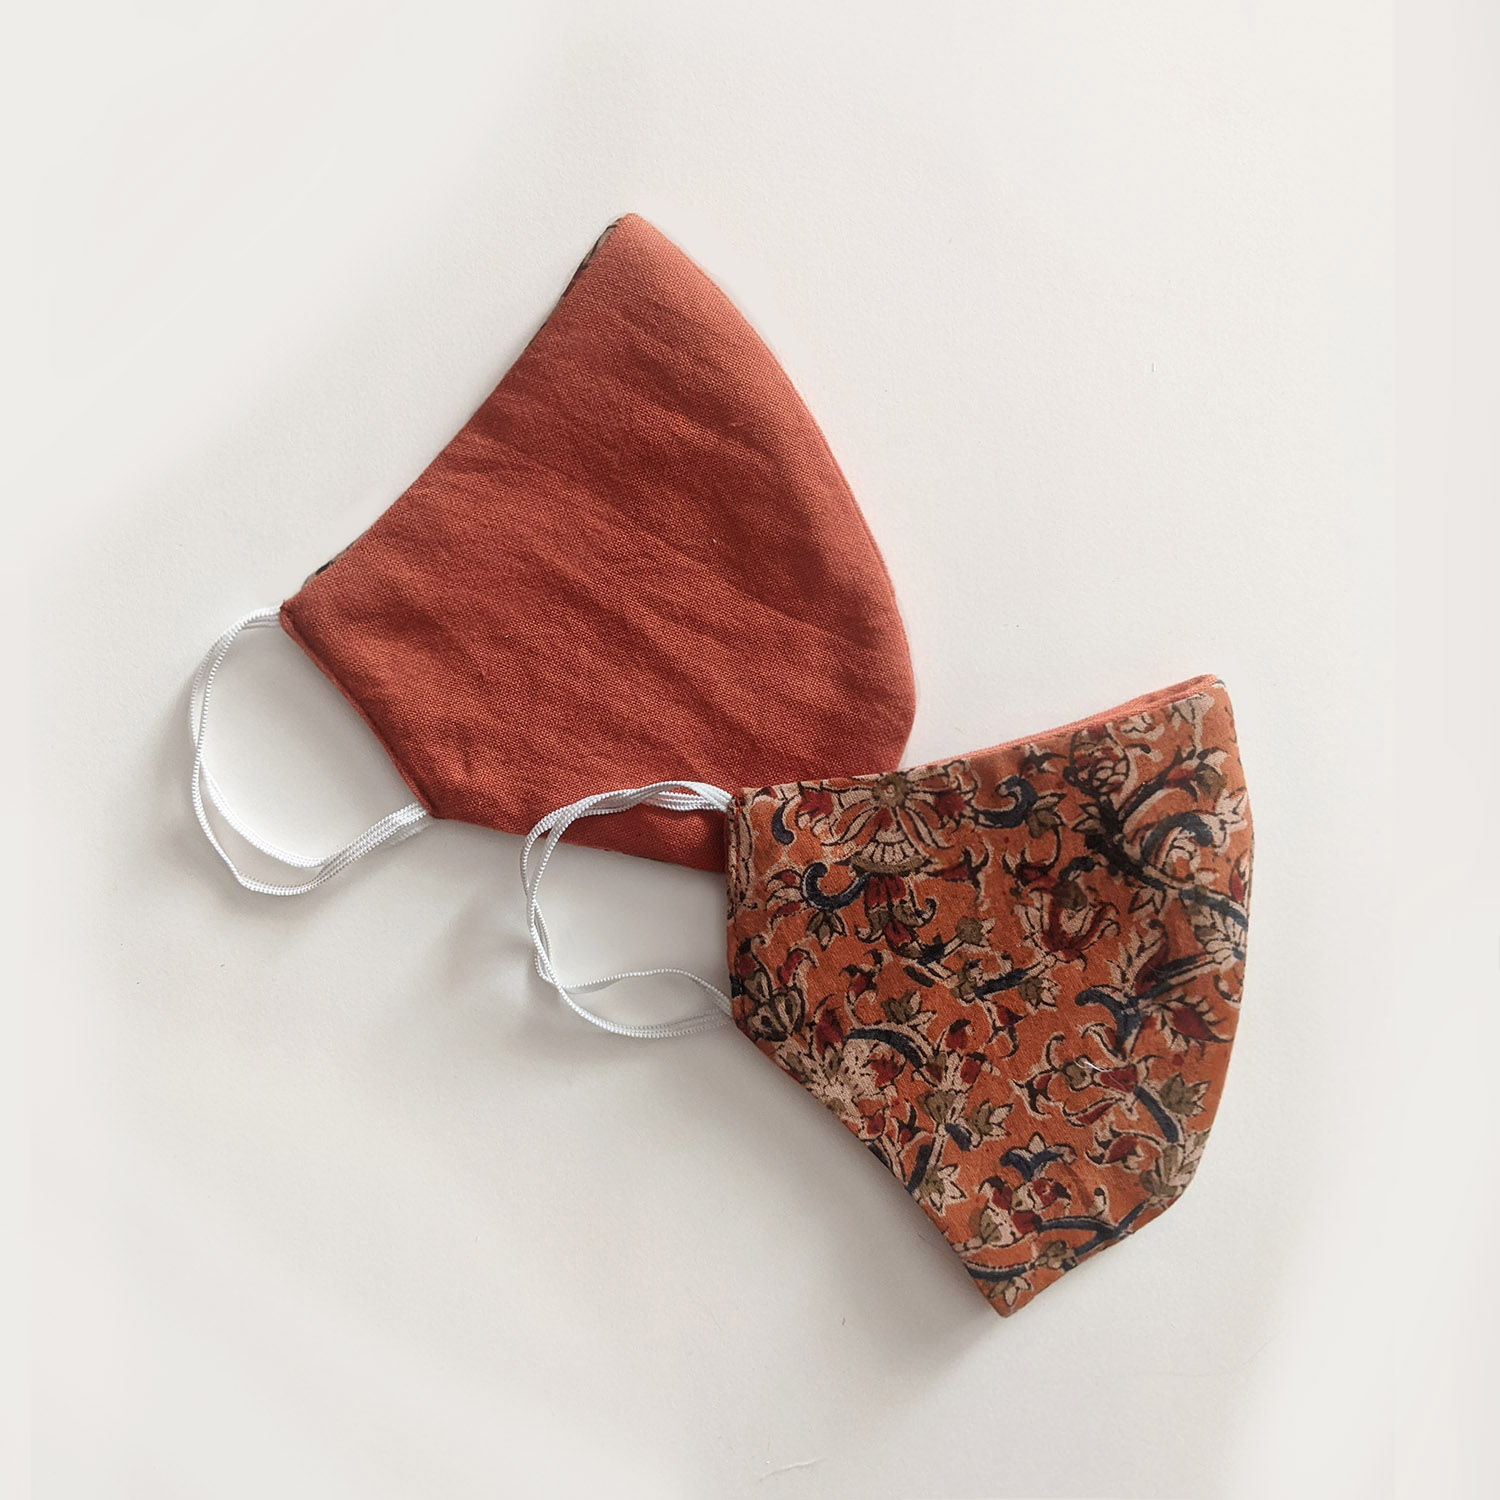 Limited Edition - Rust Orange Kalamkari Reversible Face Mask (Set of 2)